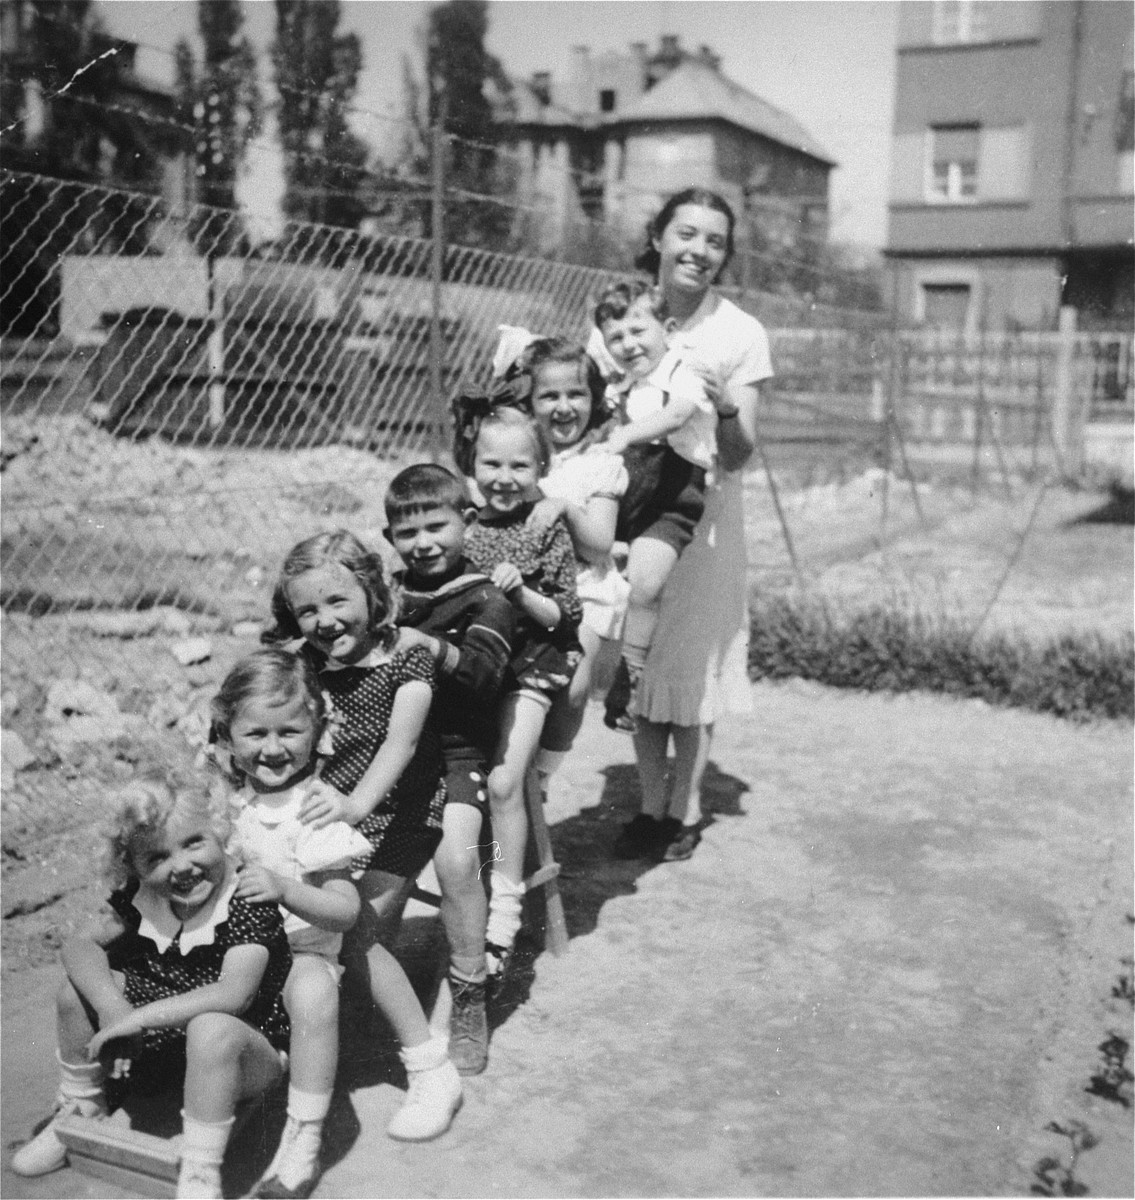 A group of Jewish and Hungarian children pose with their teacher on a seesaw in the playground of a pre-school in Budapest.    The pre-school was located on Tokoly Street in the 14th district.  Gyorgy Pick is seated closest to the teacher.